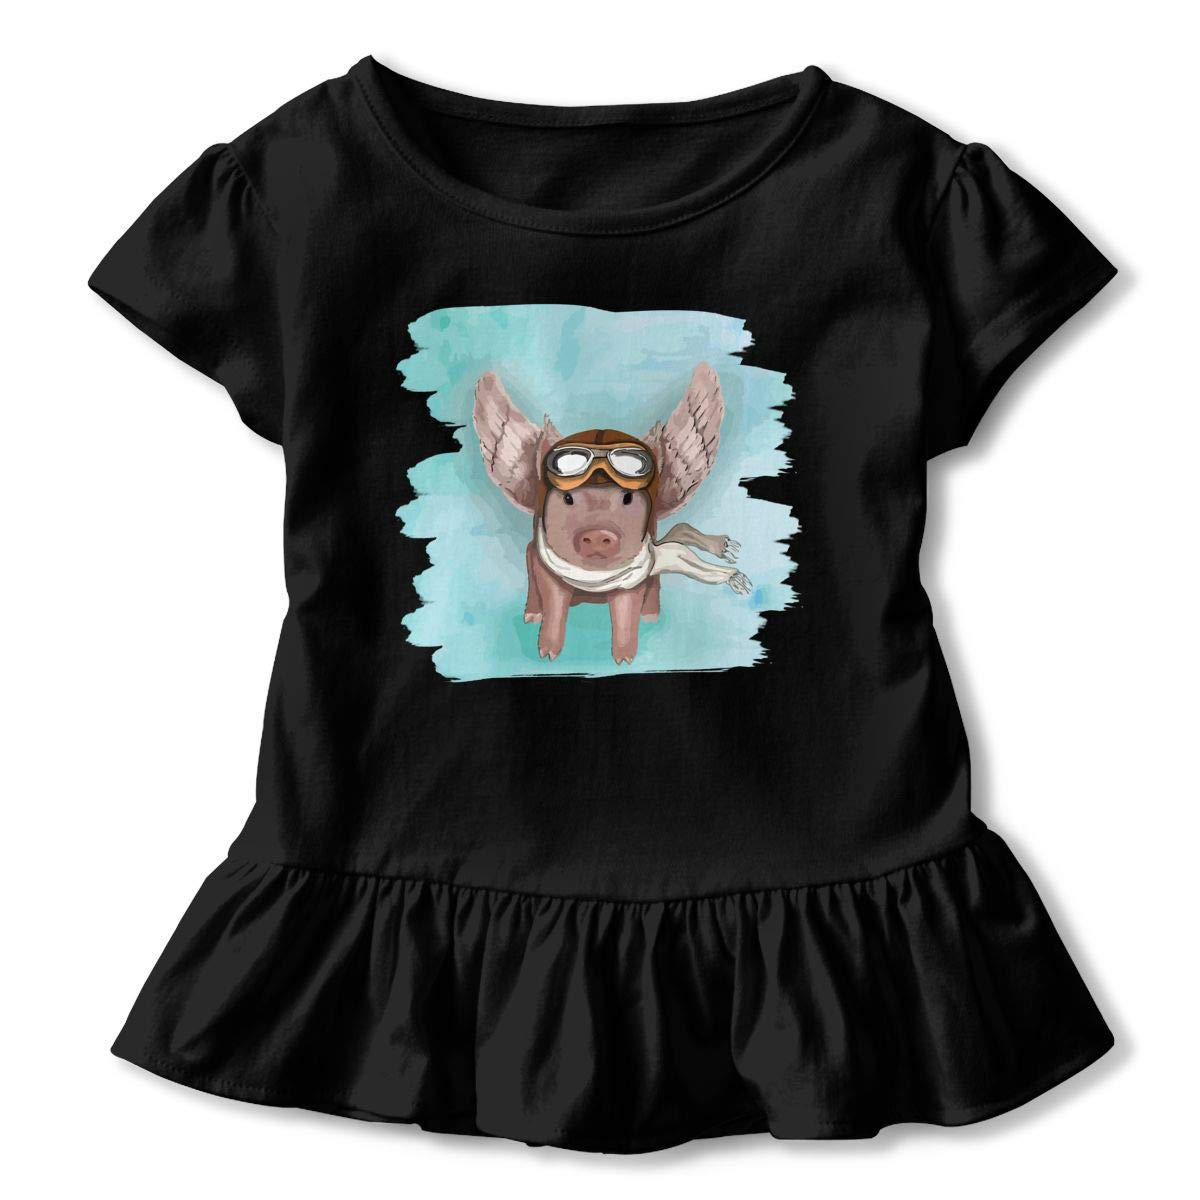 Flying Pig with Sungalsses and Scarf Toddler Baby Girls Short Sleeve Ruffle T-Shirt